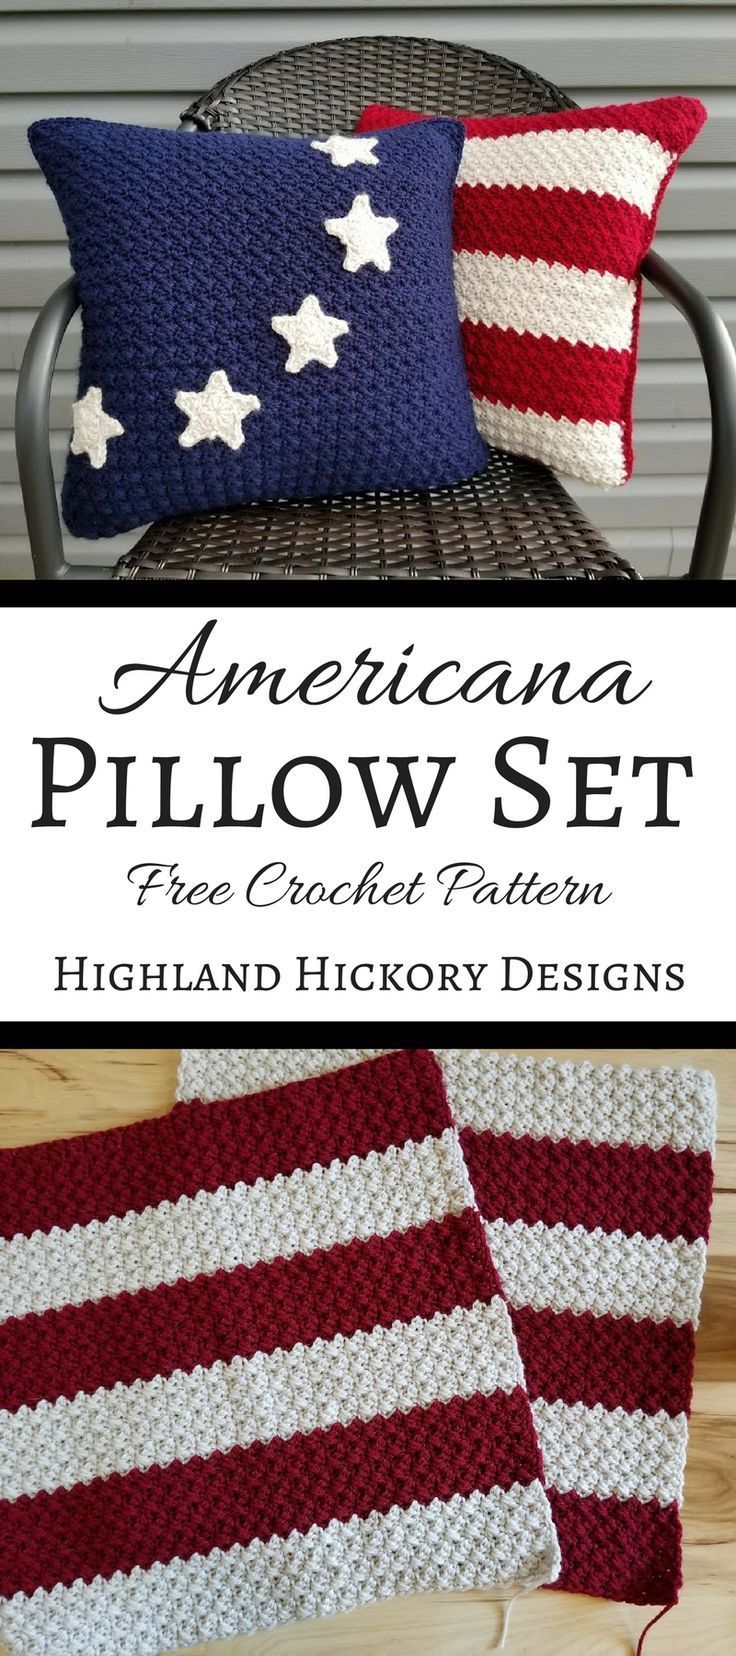 Crochet the Americana Pillow pattern that matches the Old Glory ...